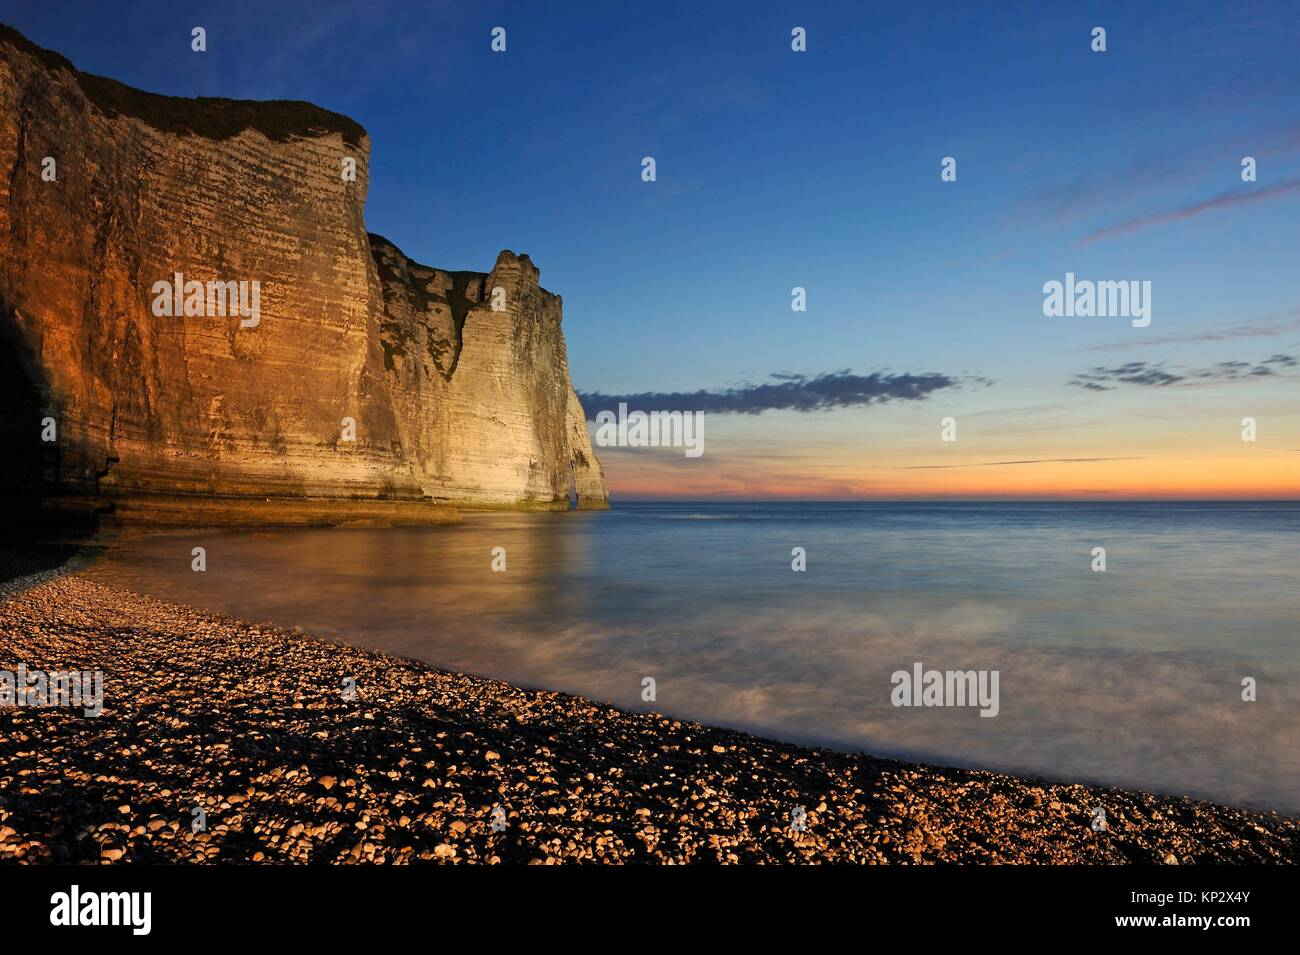 floodlit cliff, Etretat, Seine-Maritime department, Normandie region, France, Europe. - Stock Image